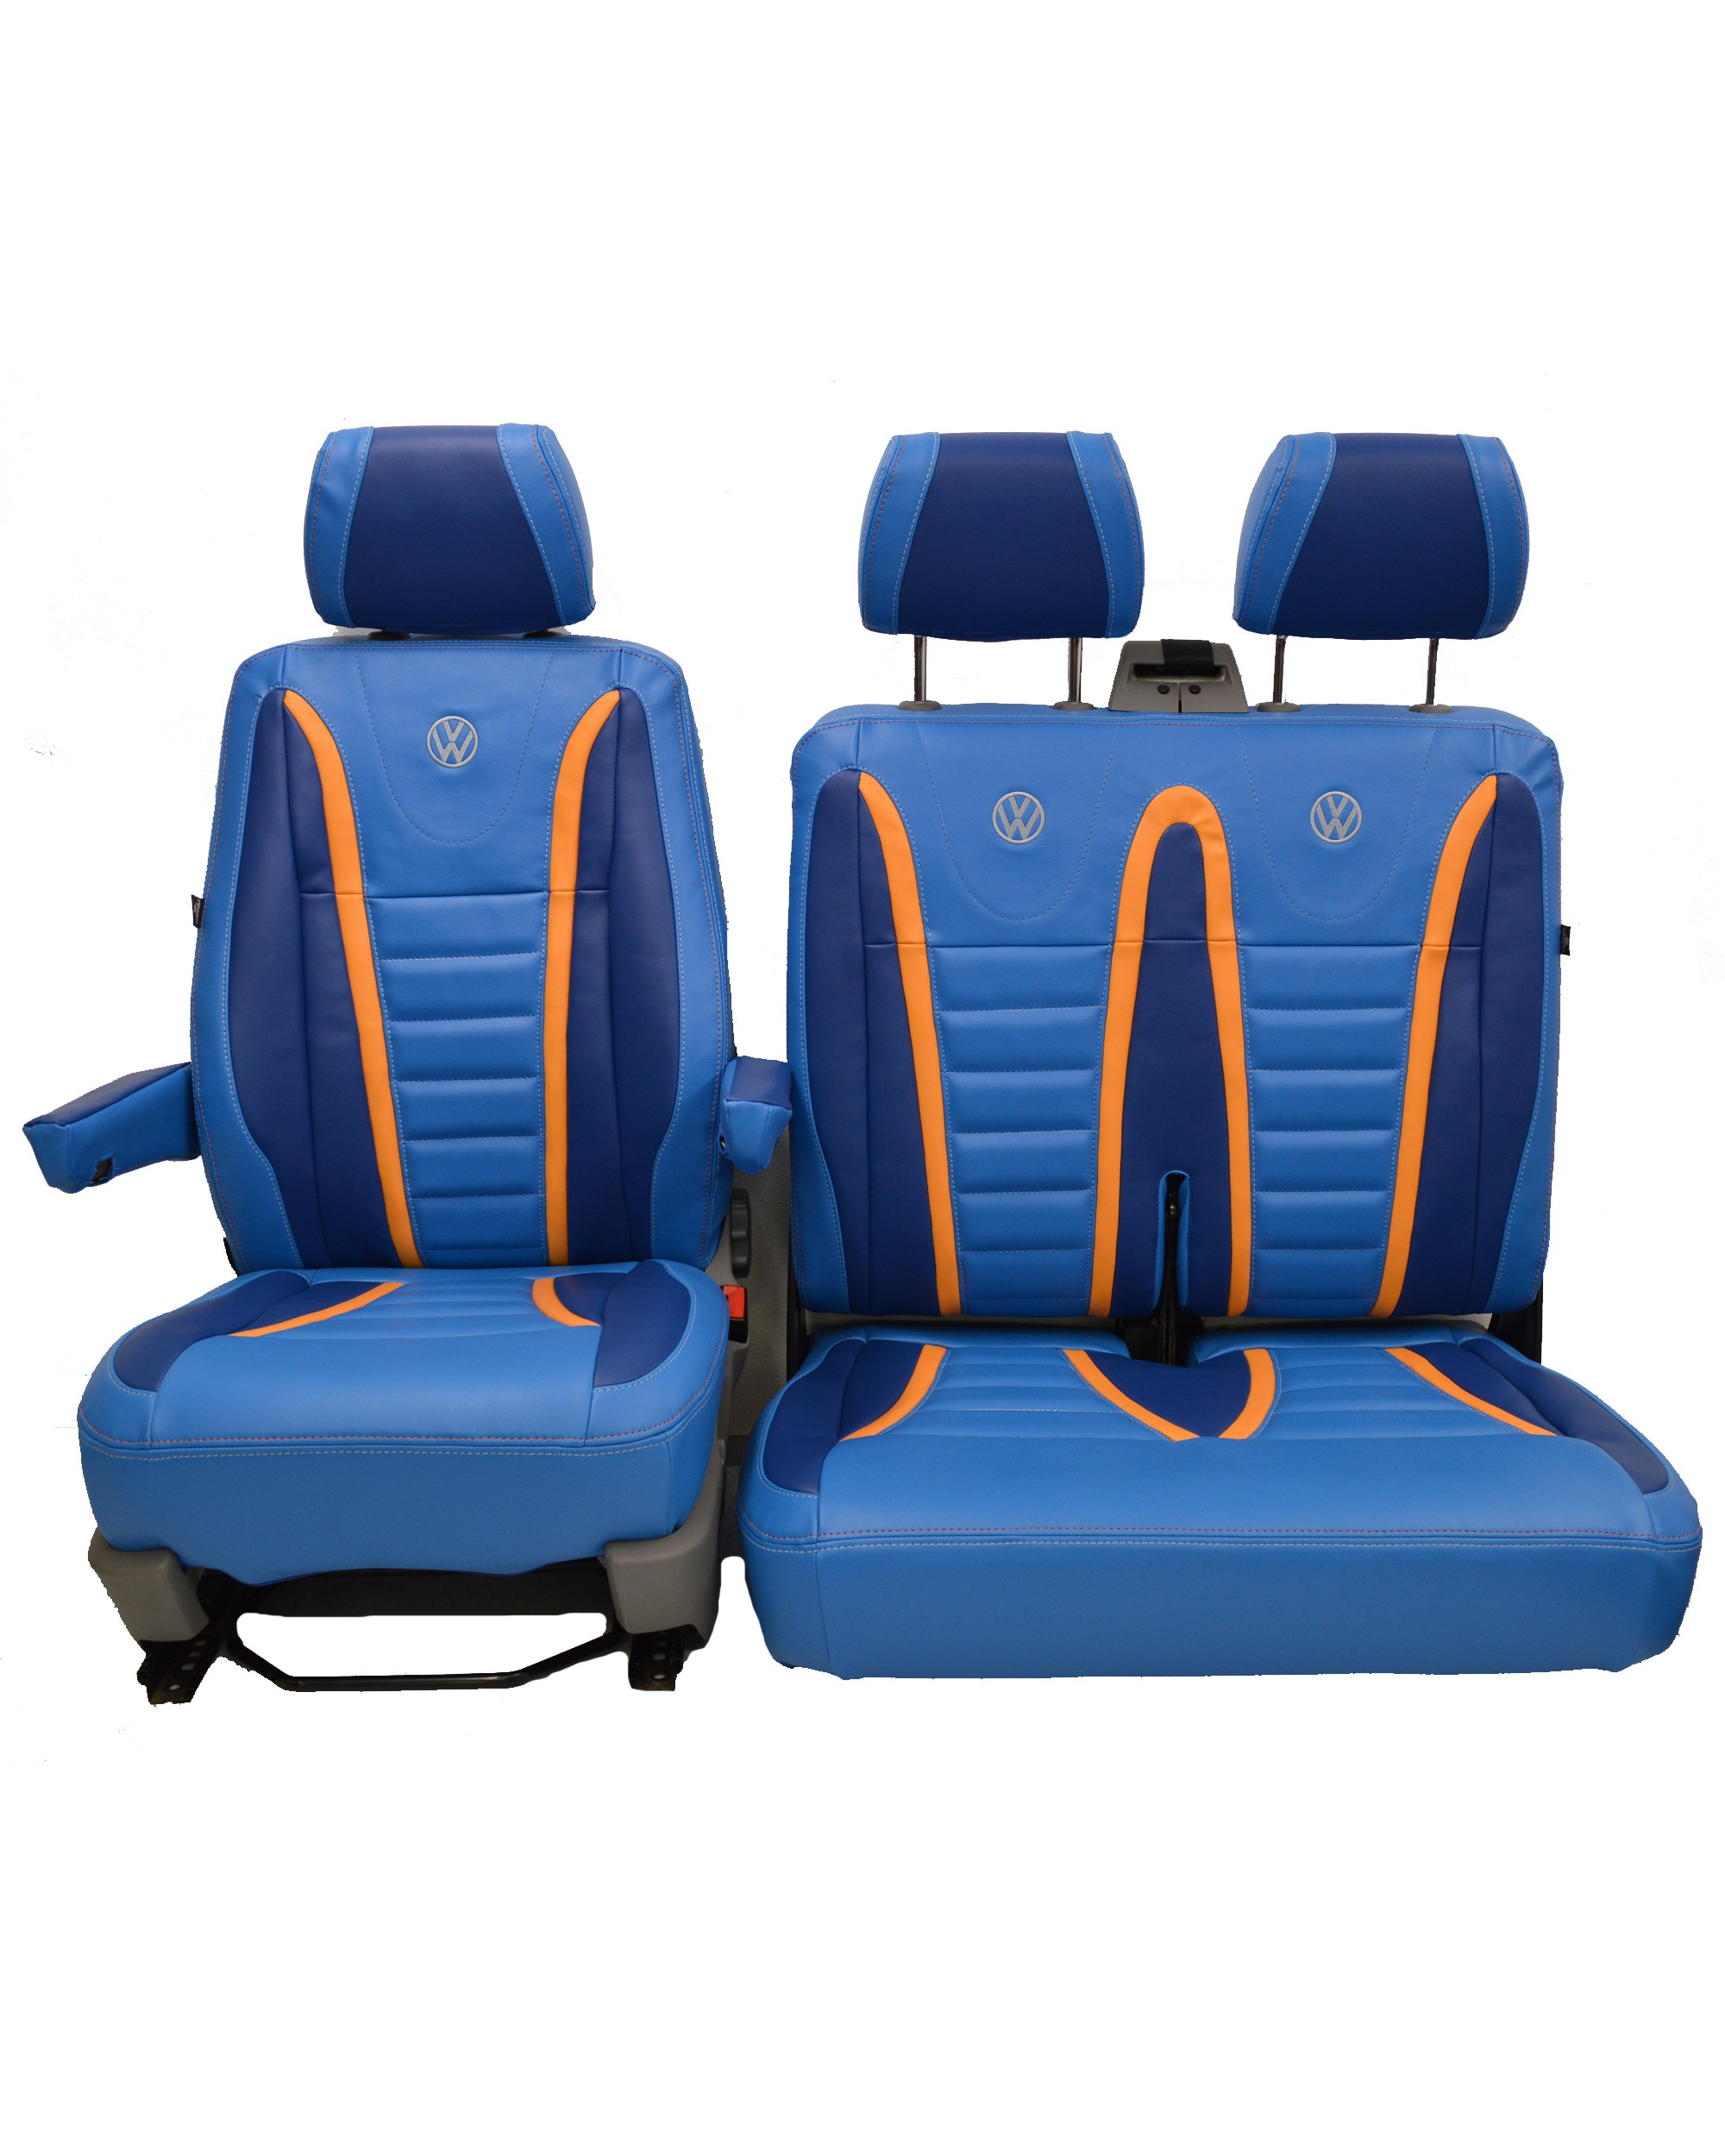 VW Transporter T5 Raceline Tailored Seat Covers